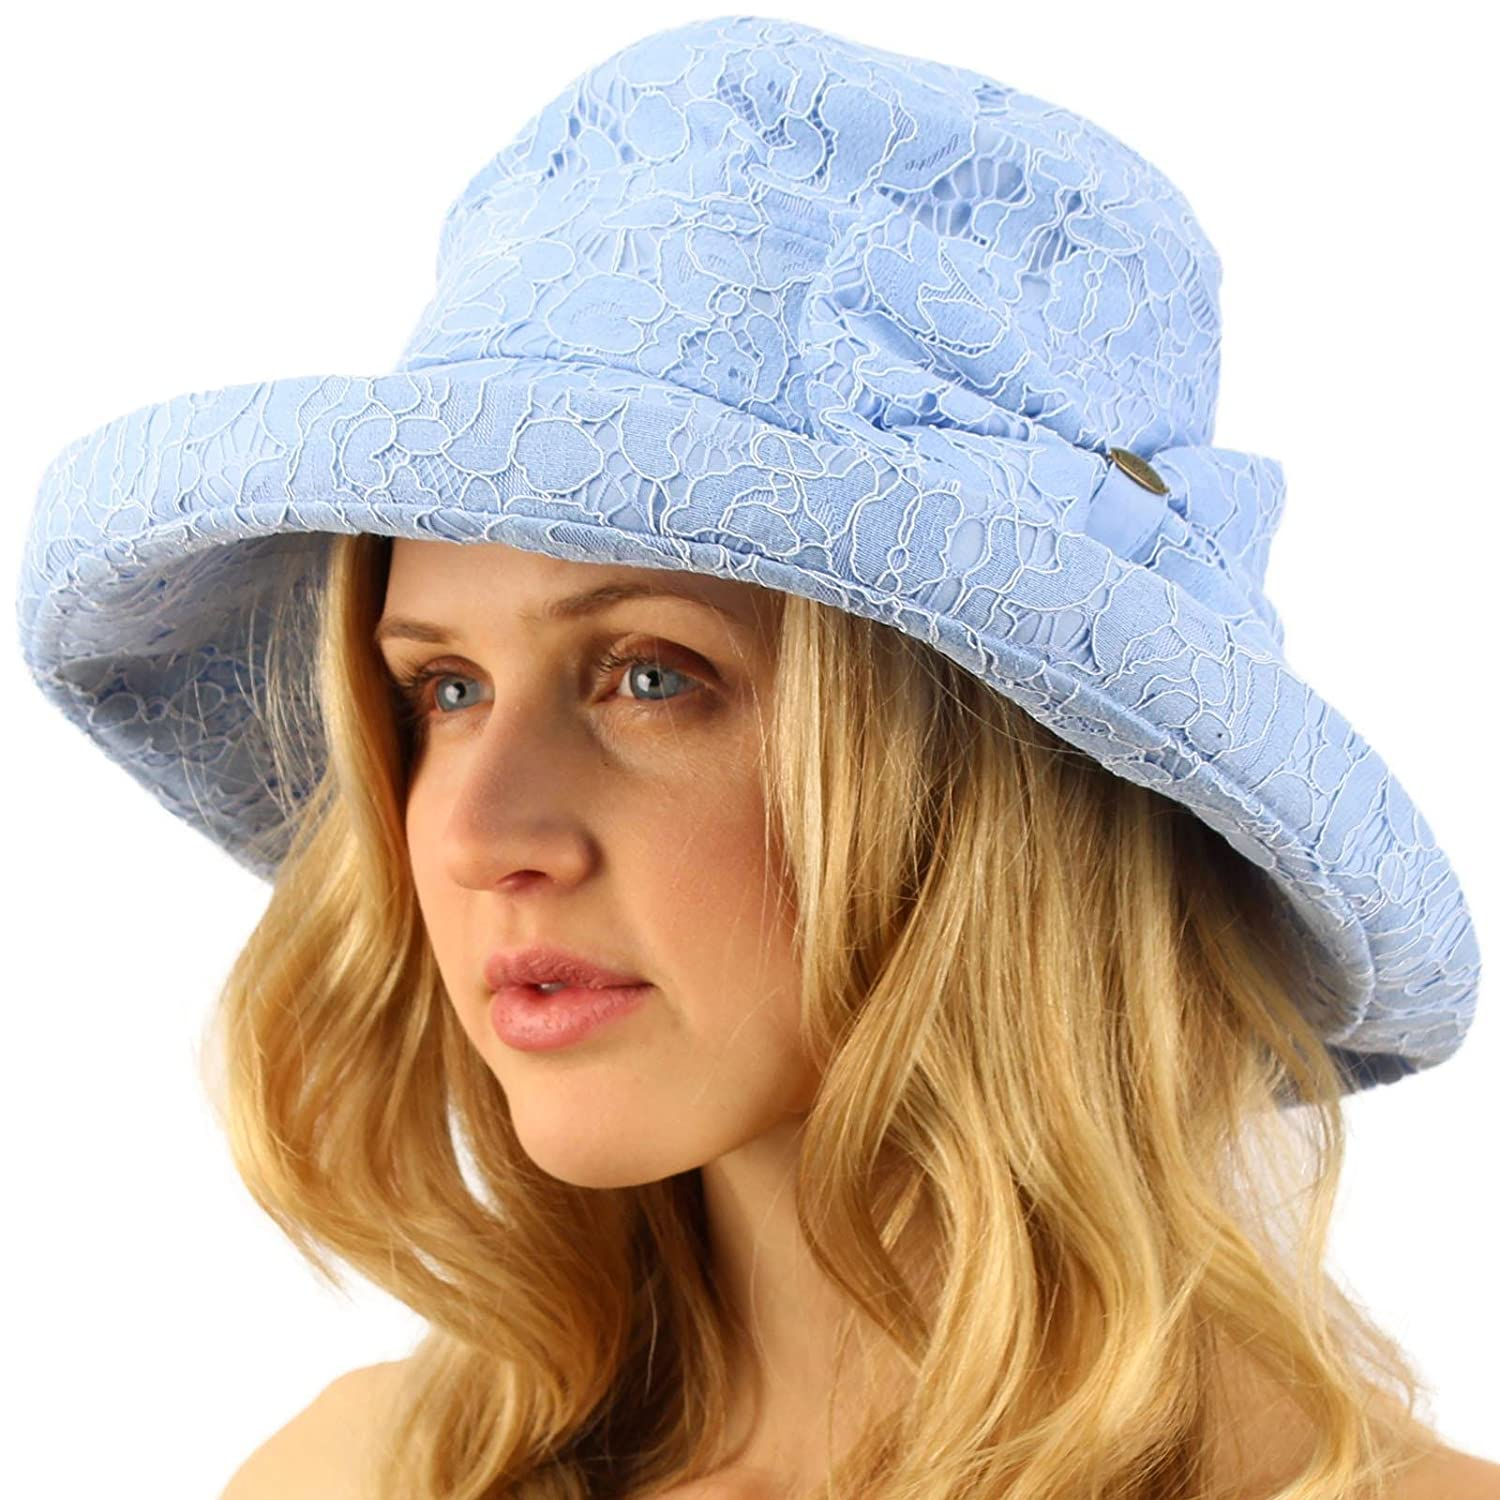 adaf931d384b6 Lace Overlay Travel Foldable Summer Derby Beach Pool Bucket Wide Sun Hat  Baby Blue at Amazon Women s Clothing store